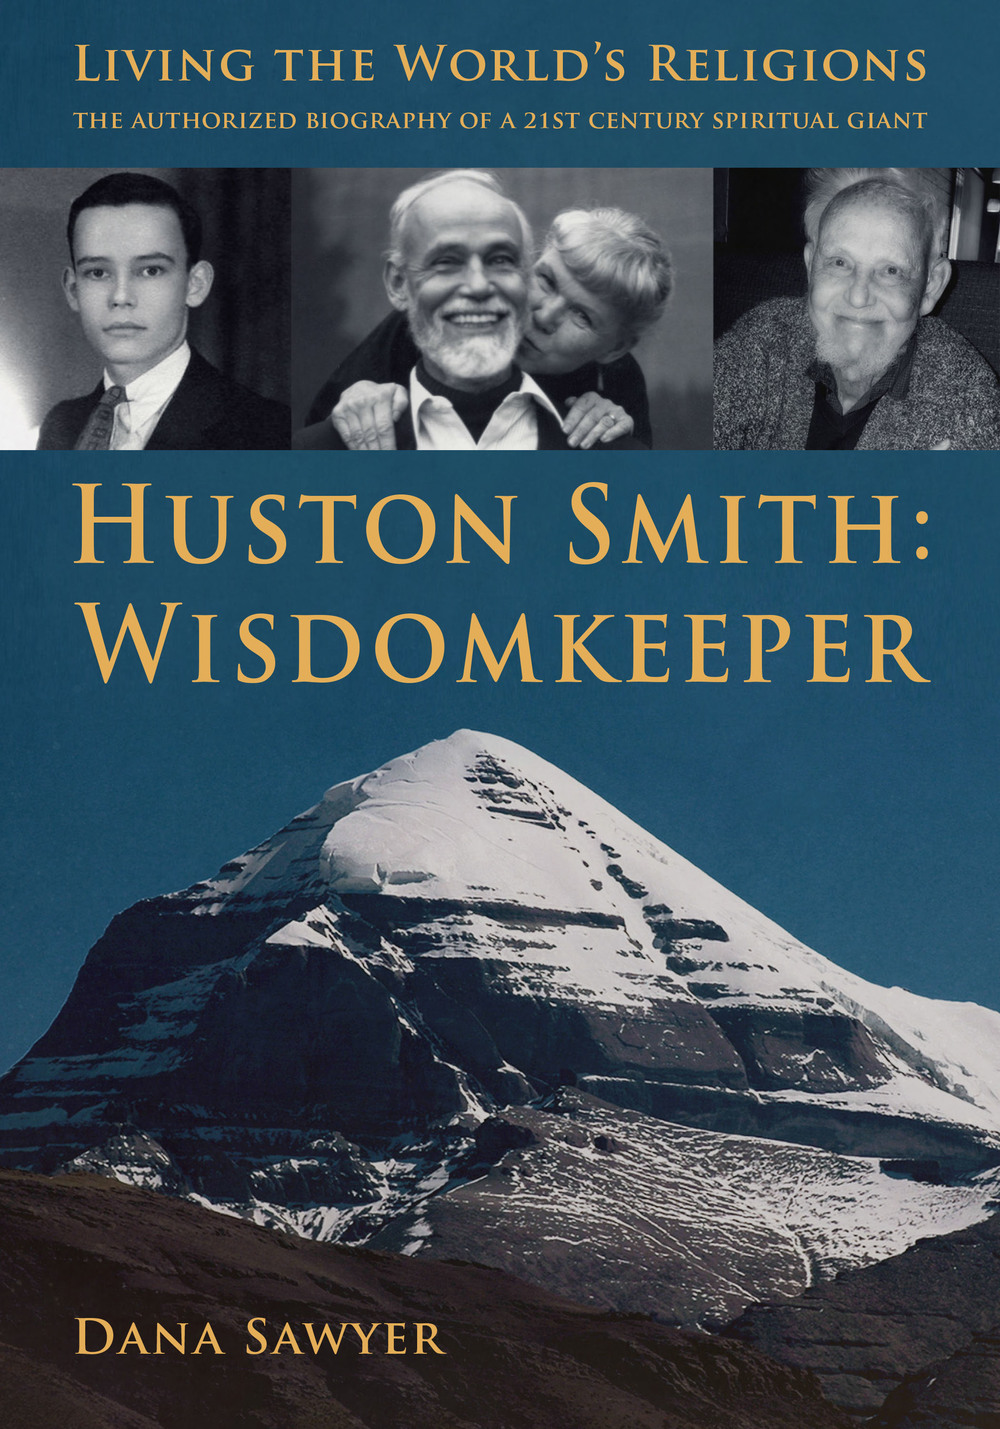 Huston Smith: Wisdomkeeper  (Louisville, KY: Fons Vitae, 2014).